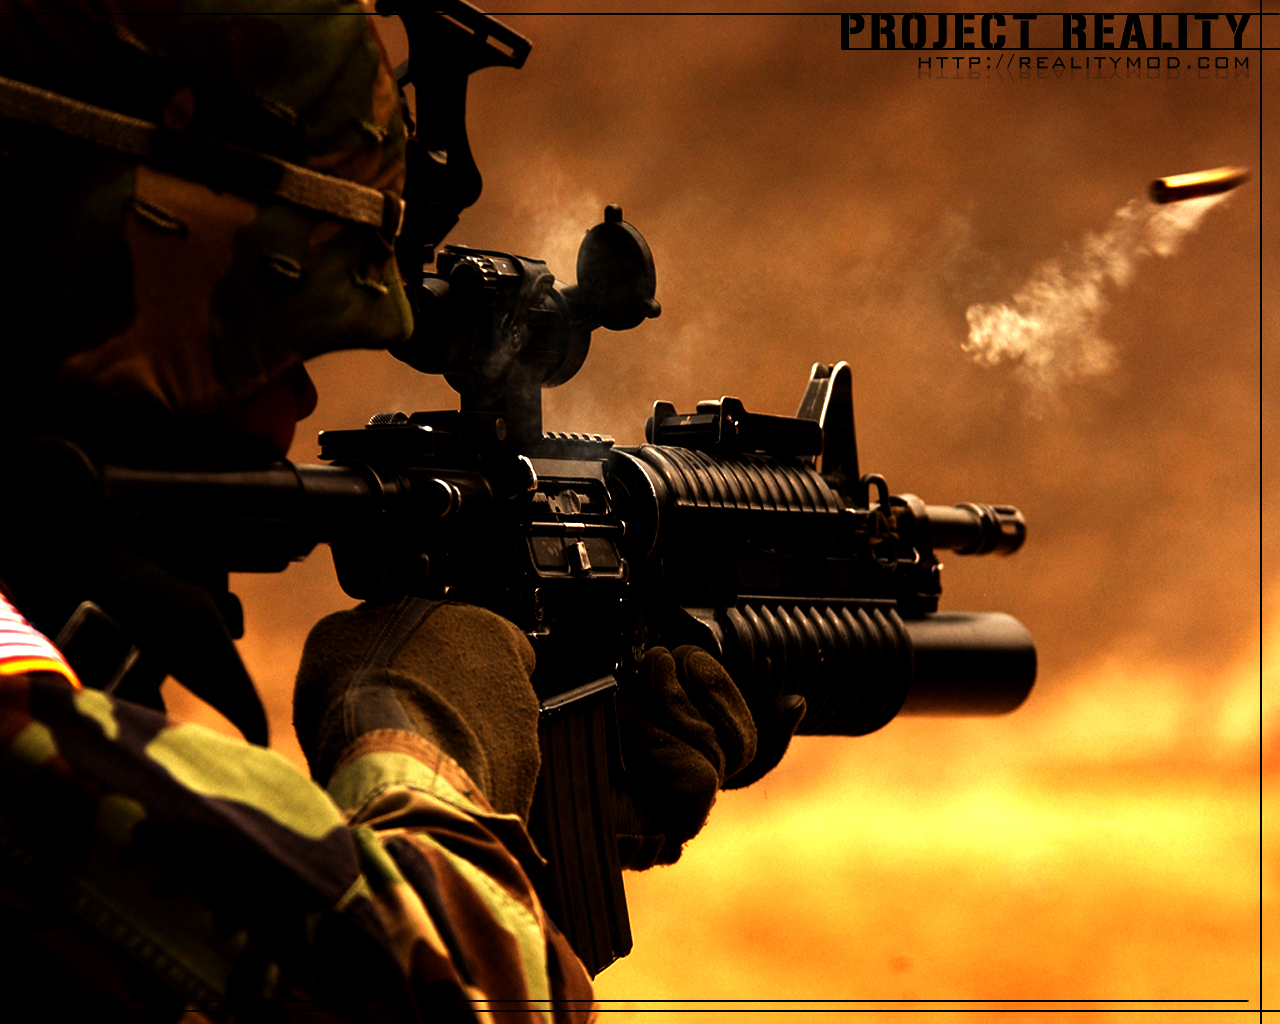 Wallpaper | Project Reality